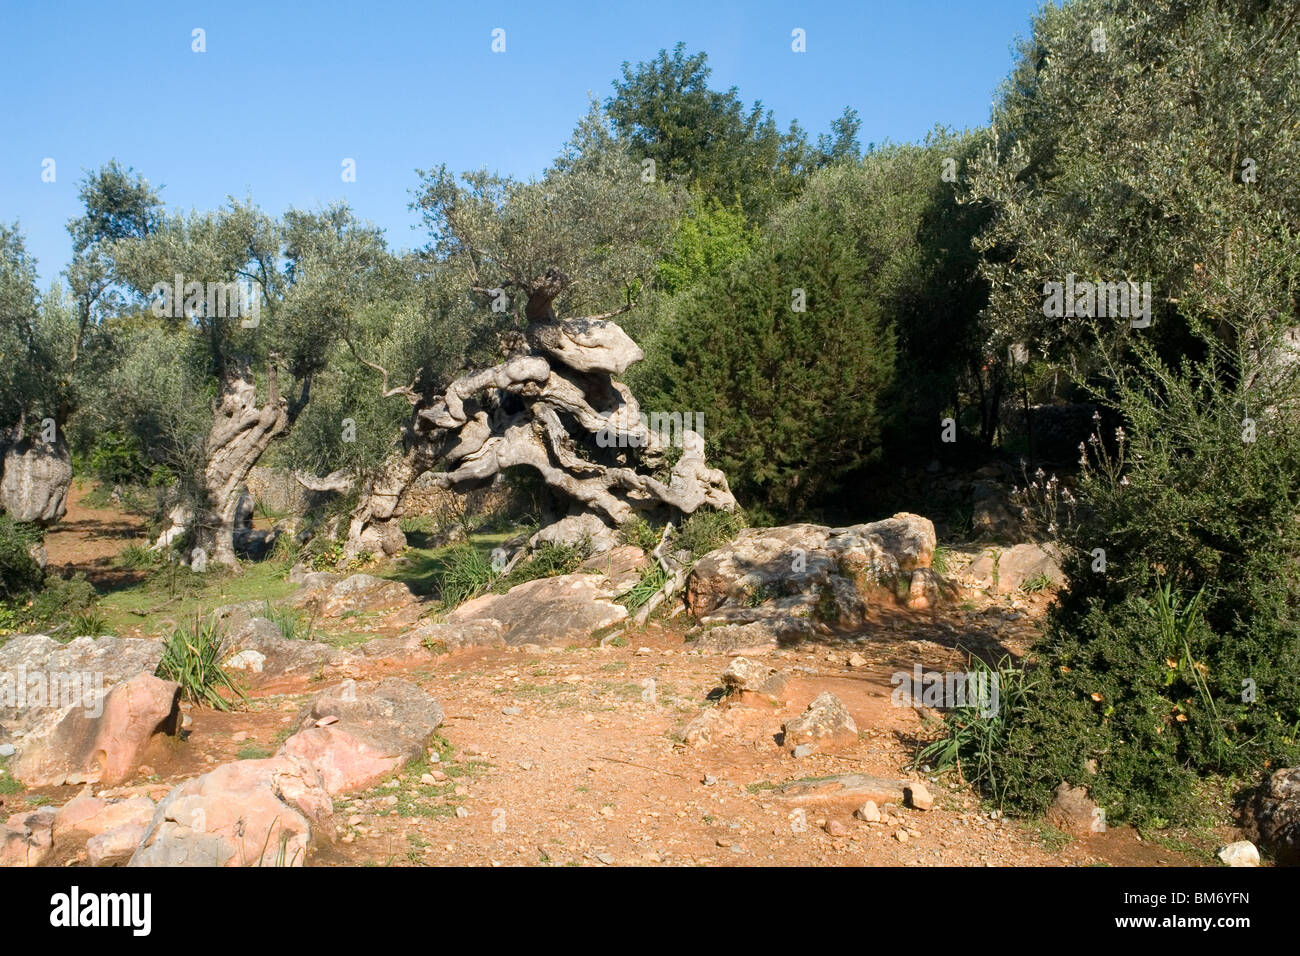 In Majorca,a several hundred-year-old olive tree (Balearic islands - Spain). A Majorque, un olivier pluri-centenaire - Stock Image